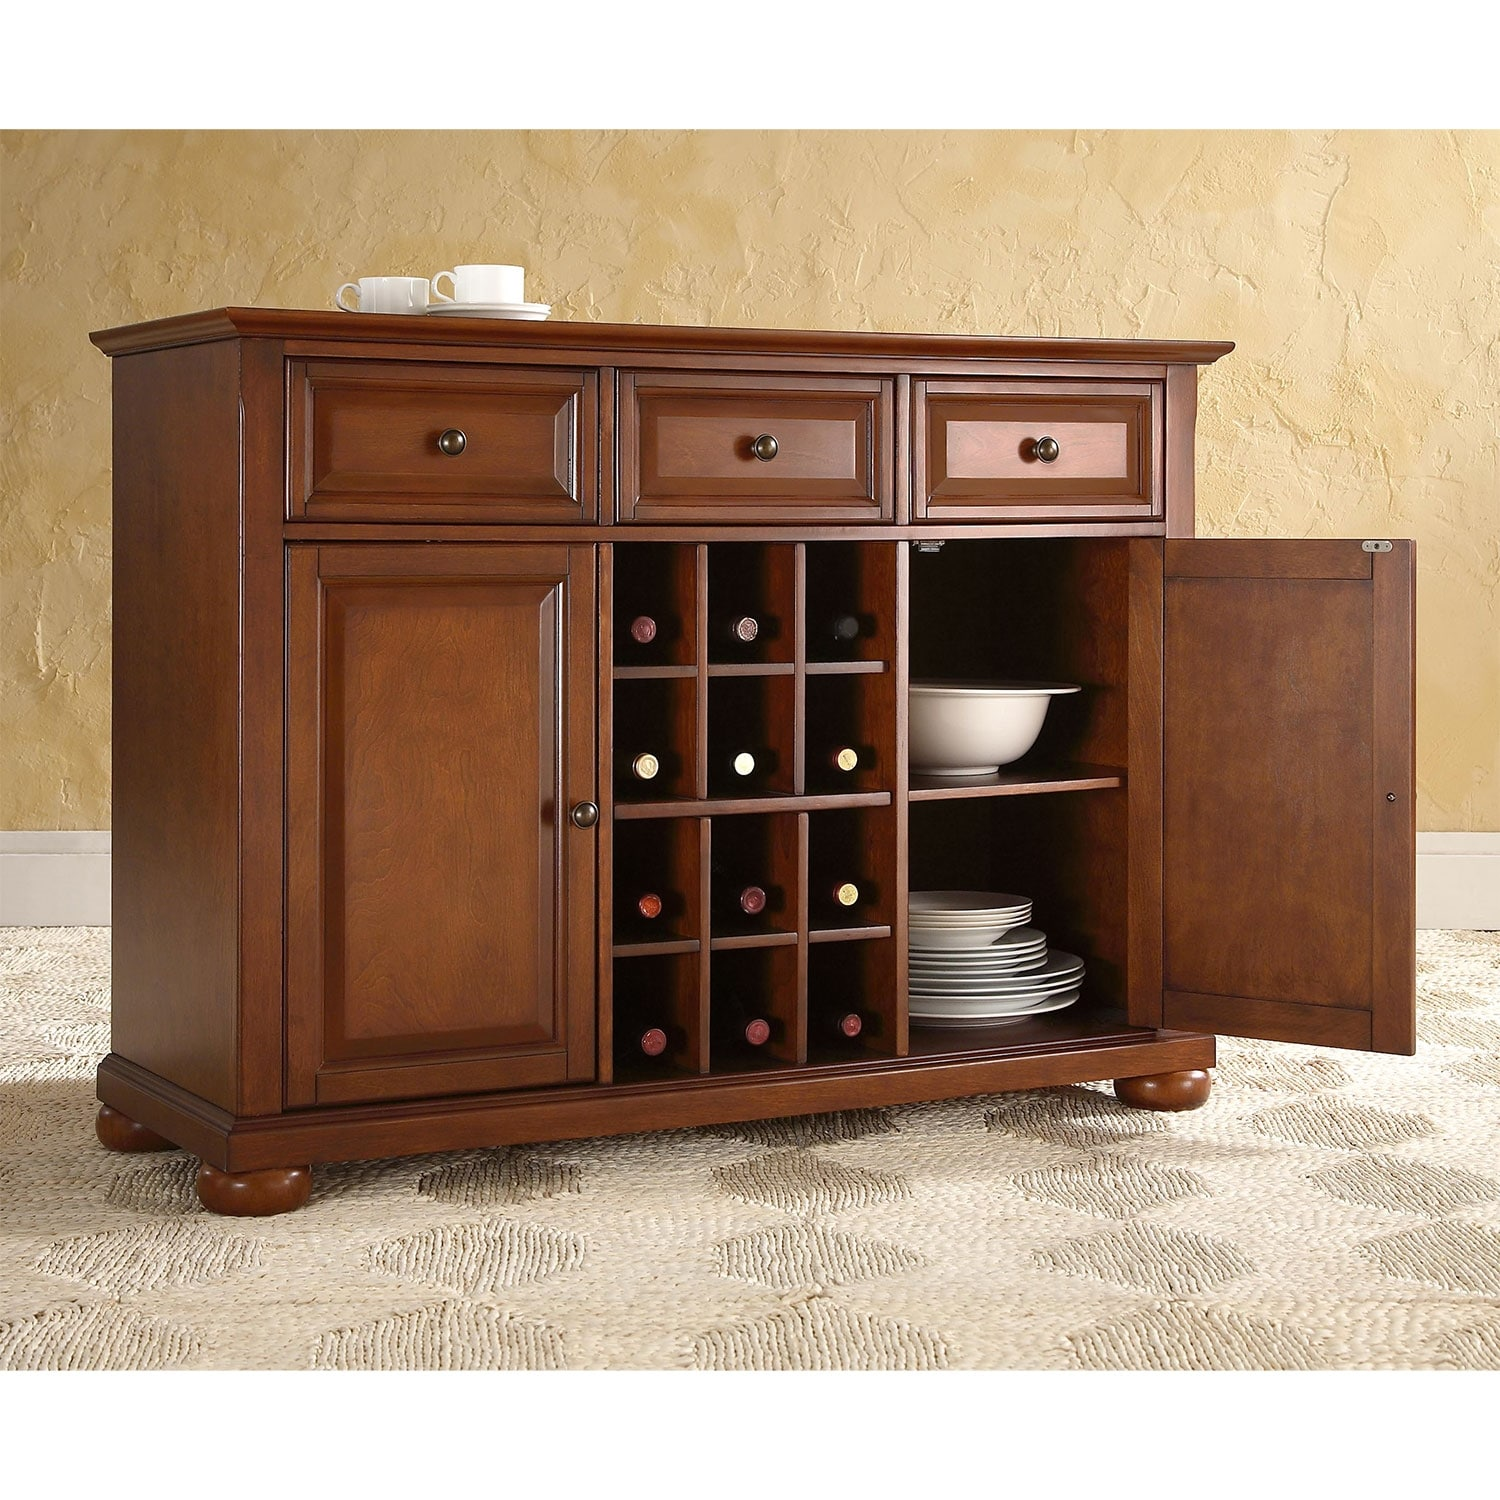 Dining Room Furniture - Lee Sideboard - Cherry